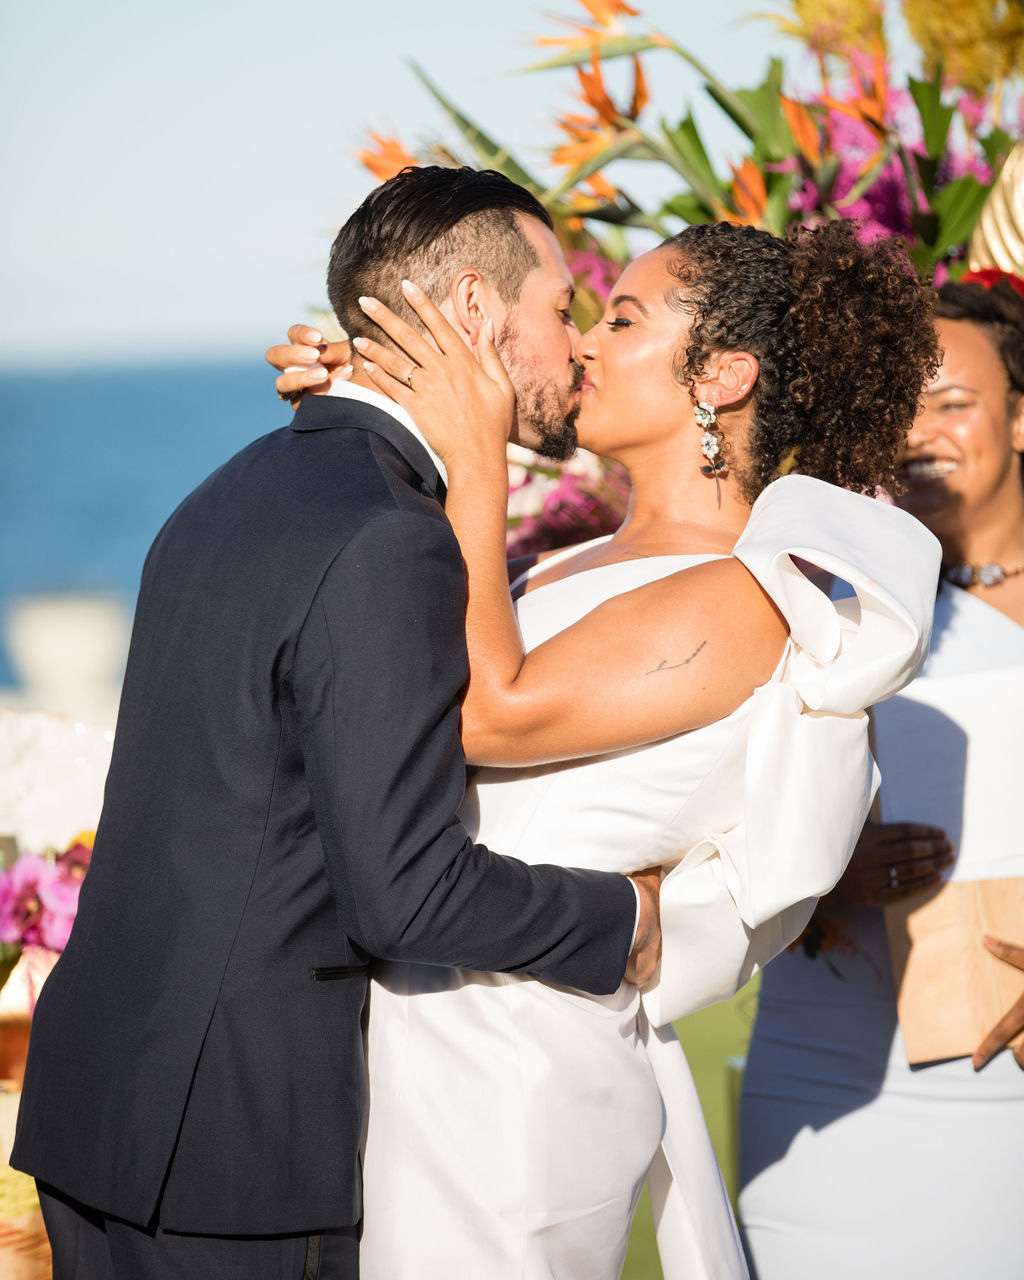 dalila elliot wedding couple ceremony kiss